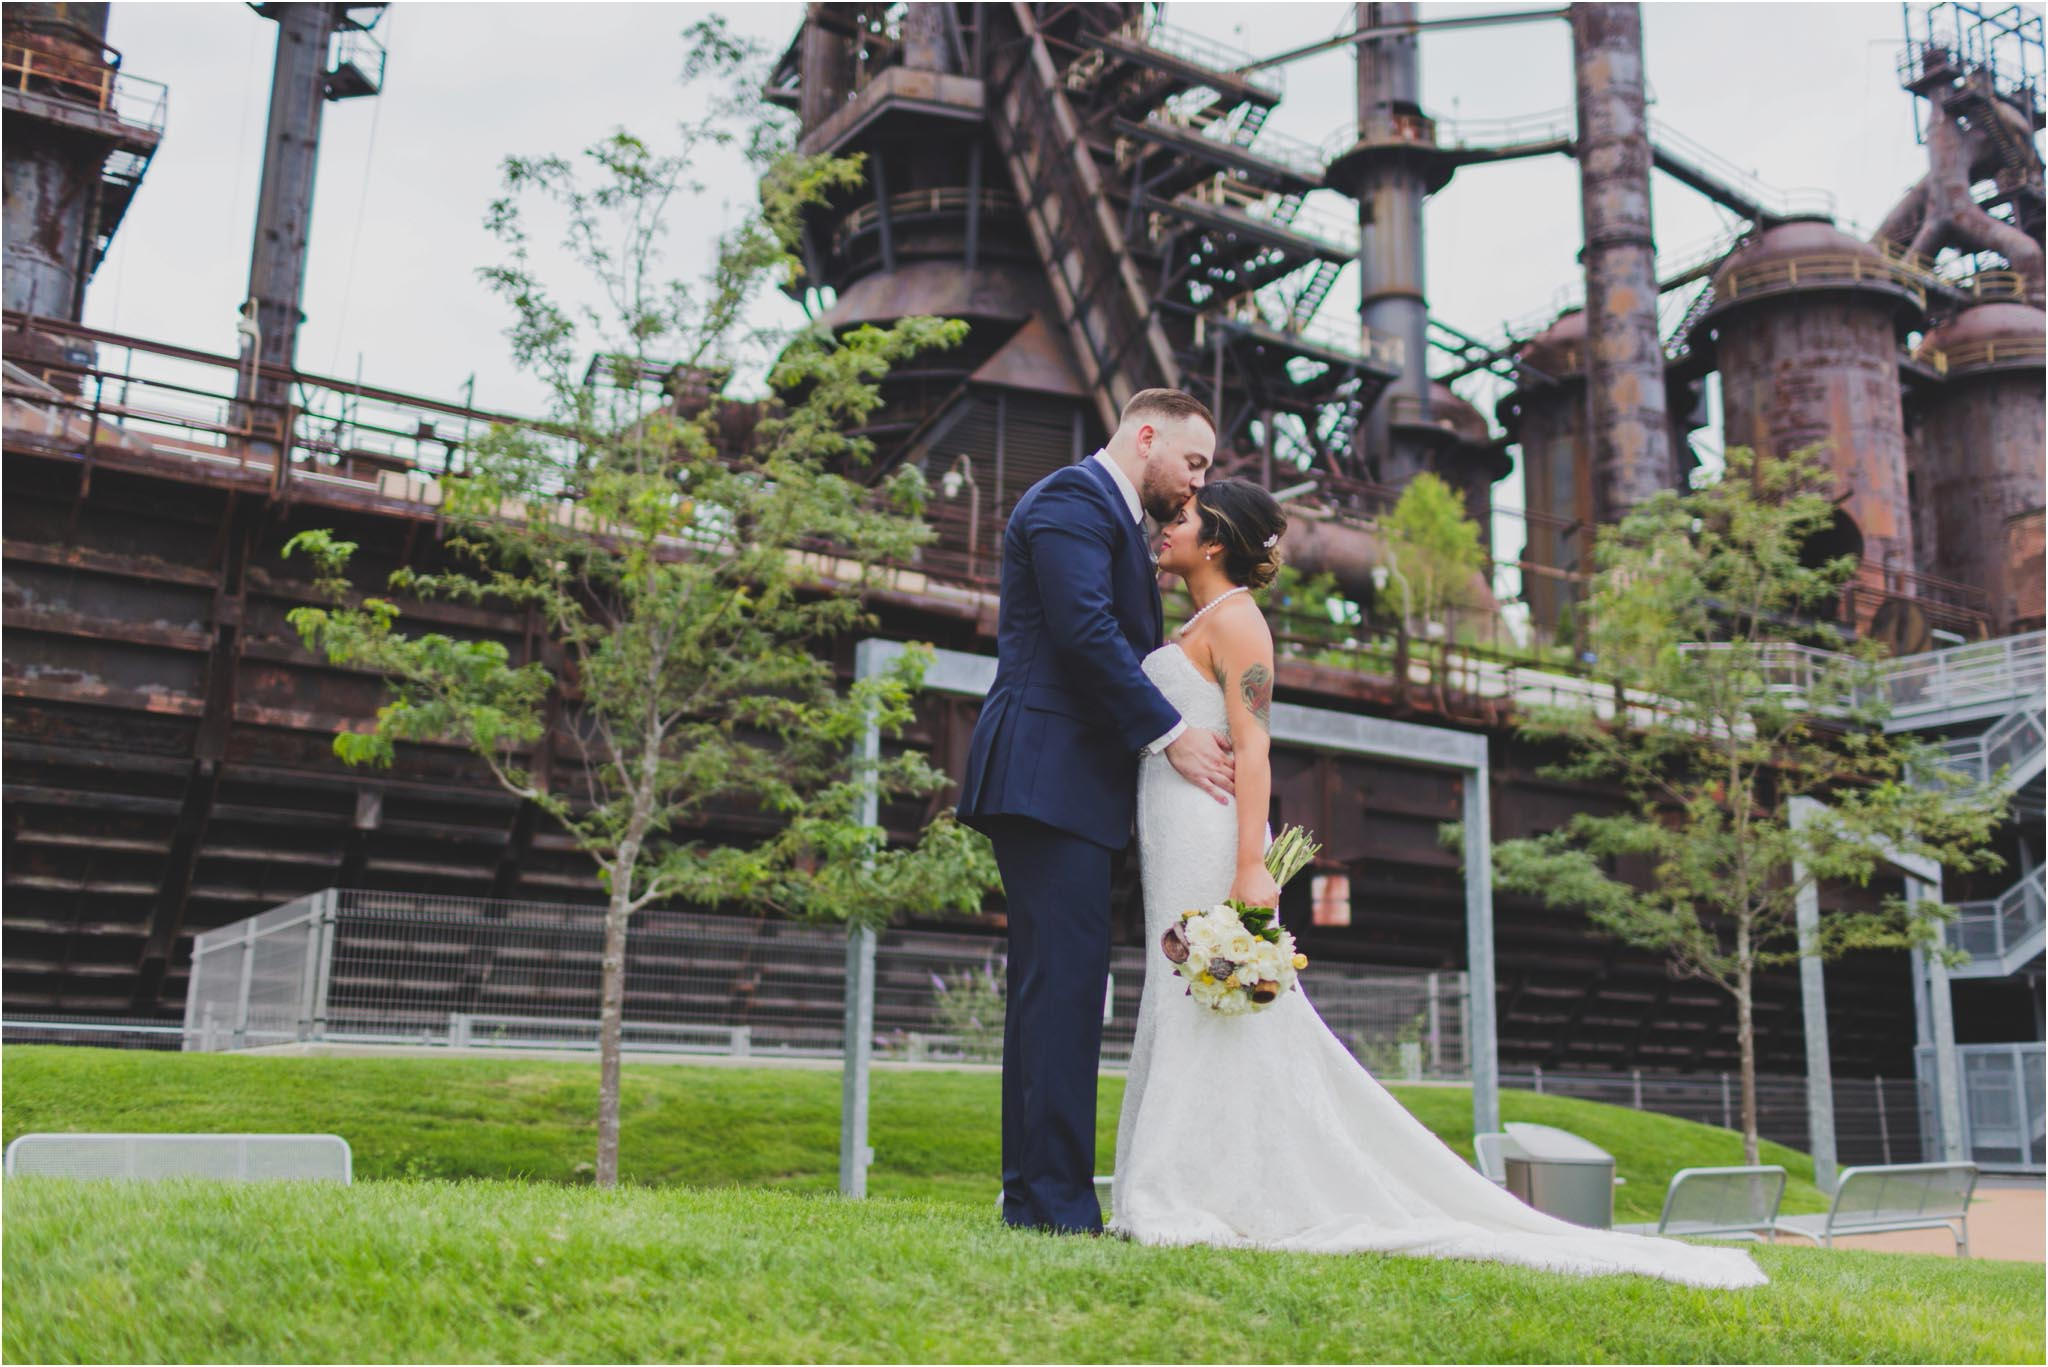 Bethlehem, Steelstacks, wedding